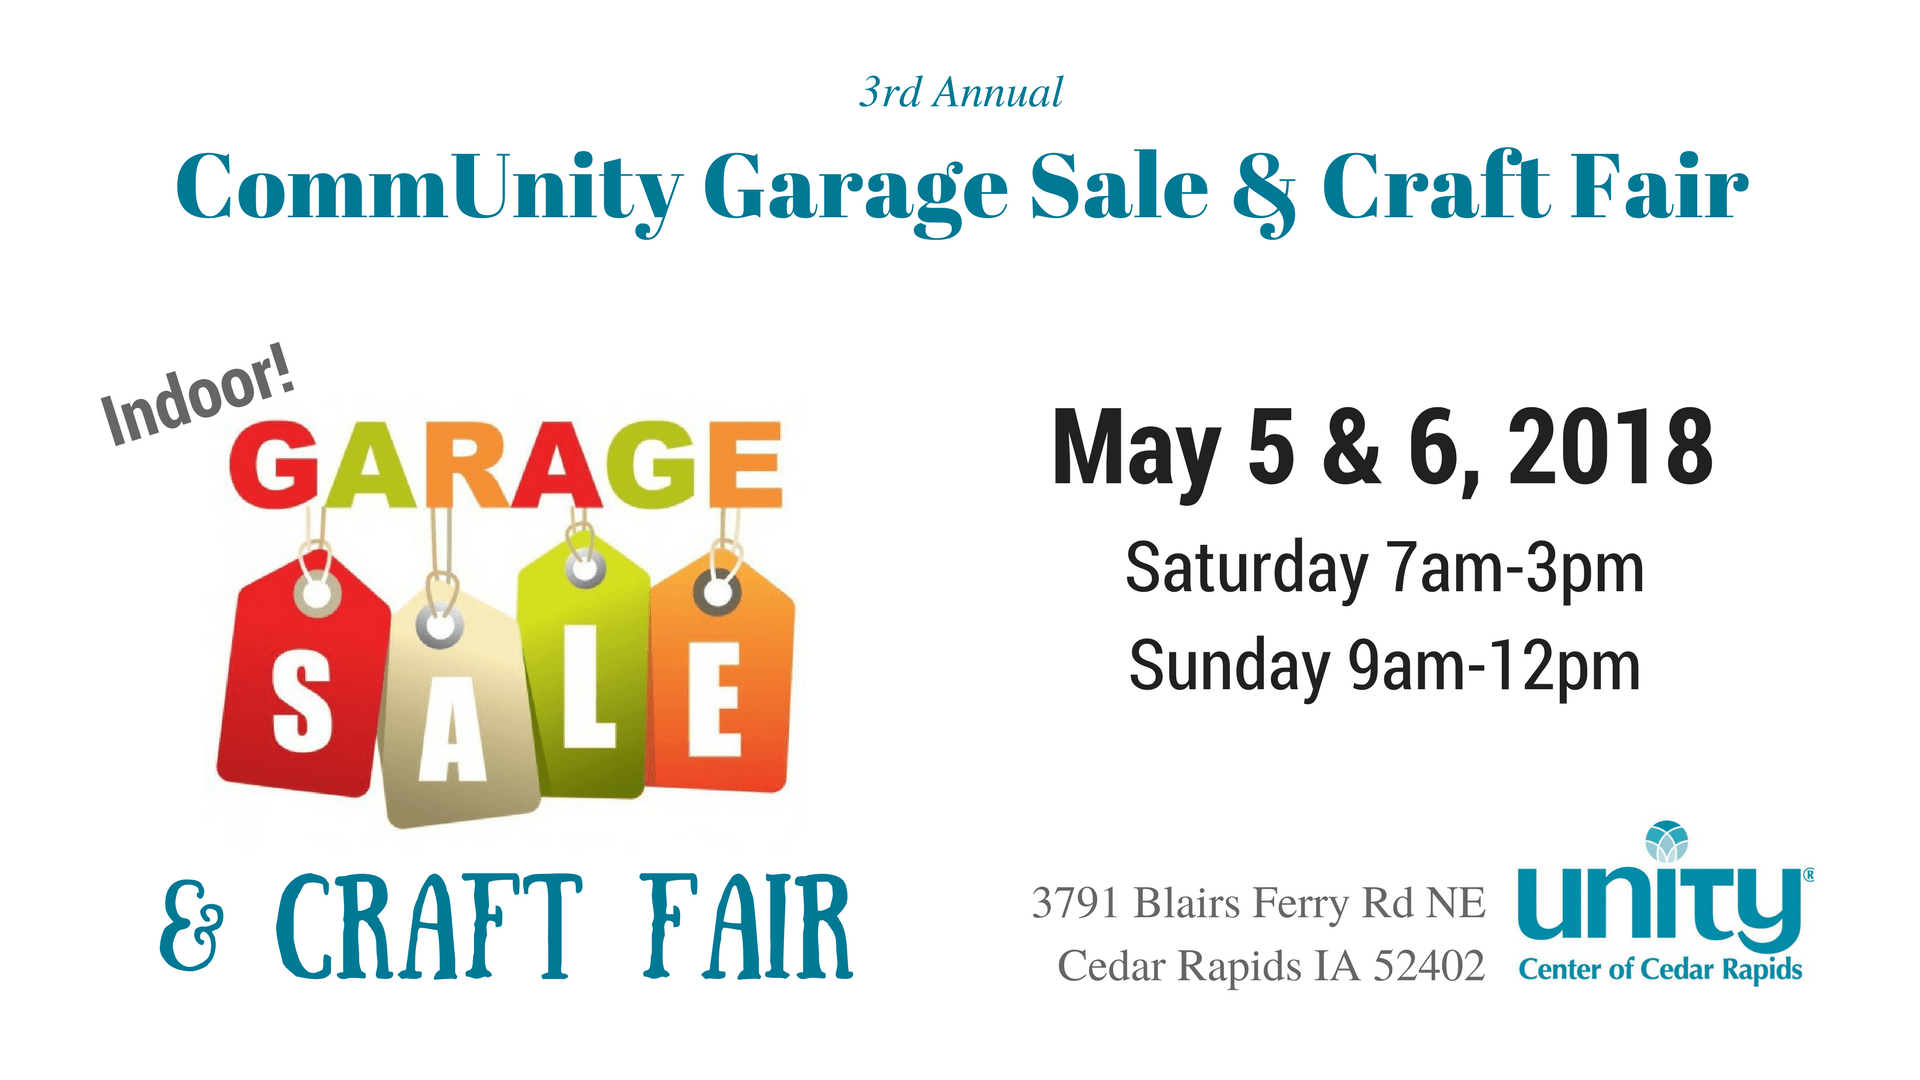 3rd Annual CommUnity Garage Sale & Craft Fair